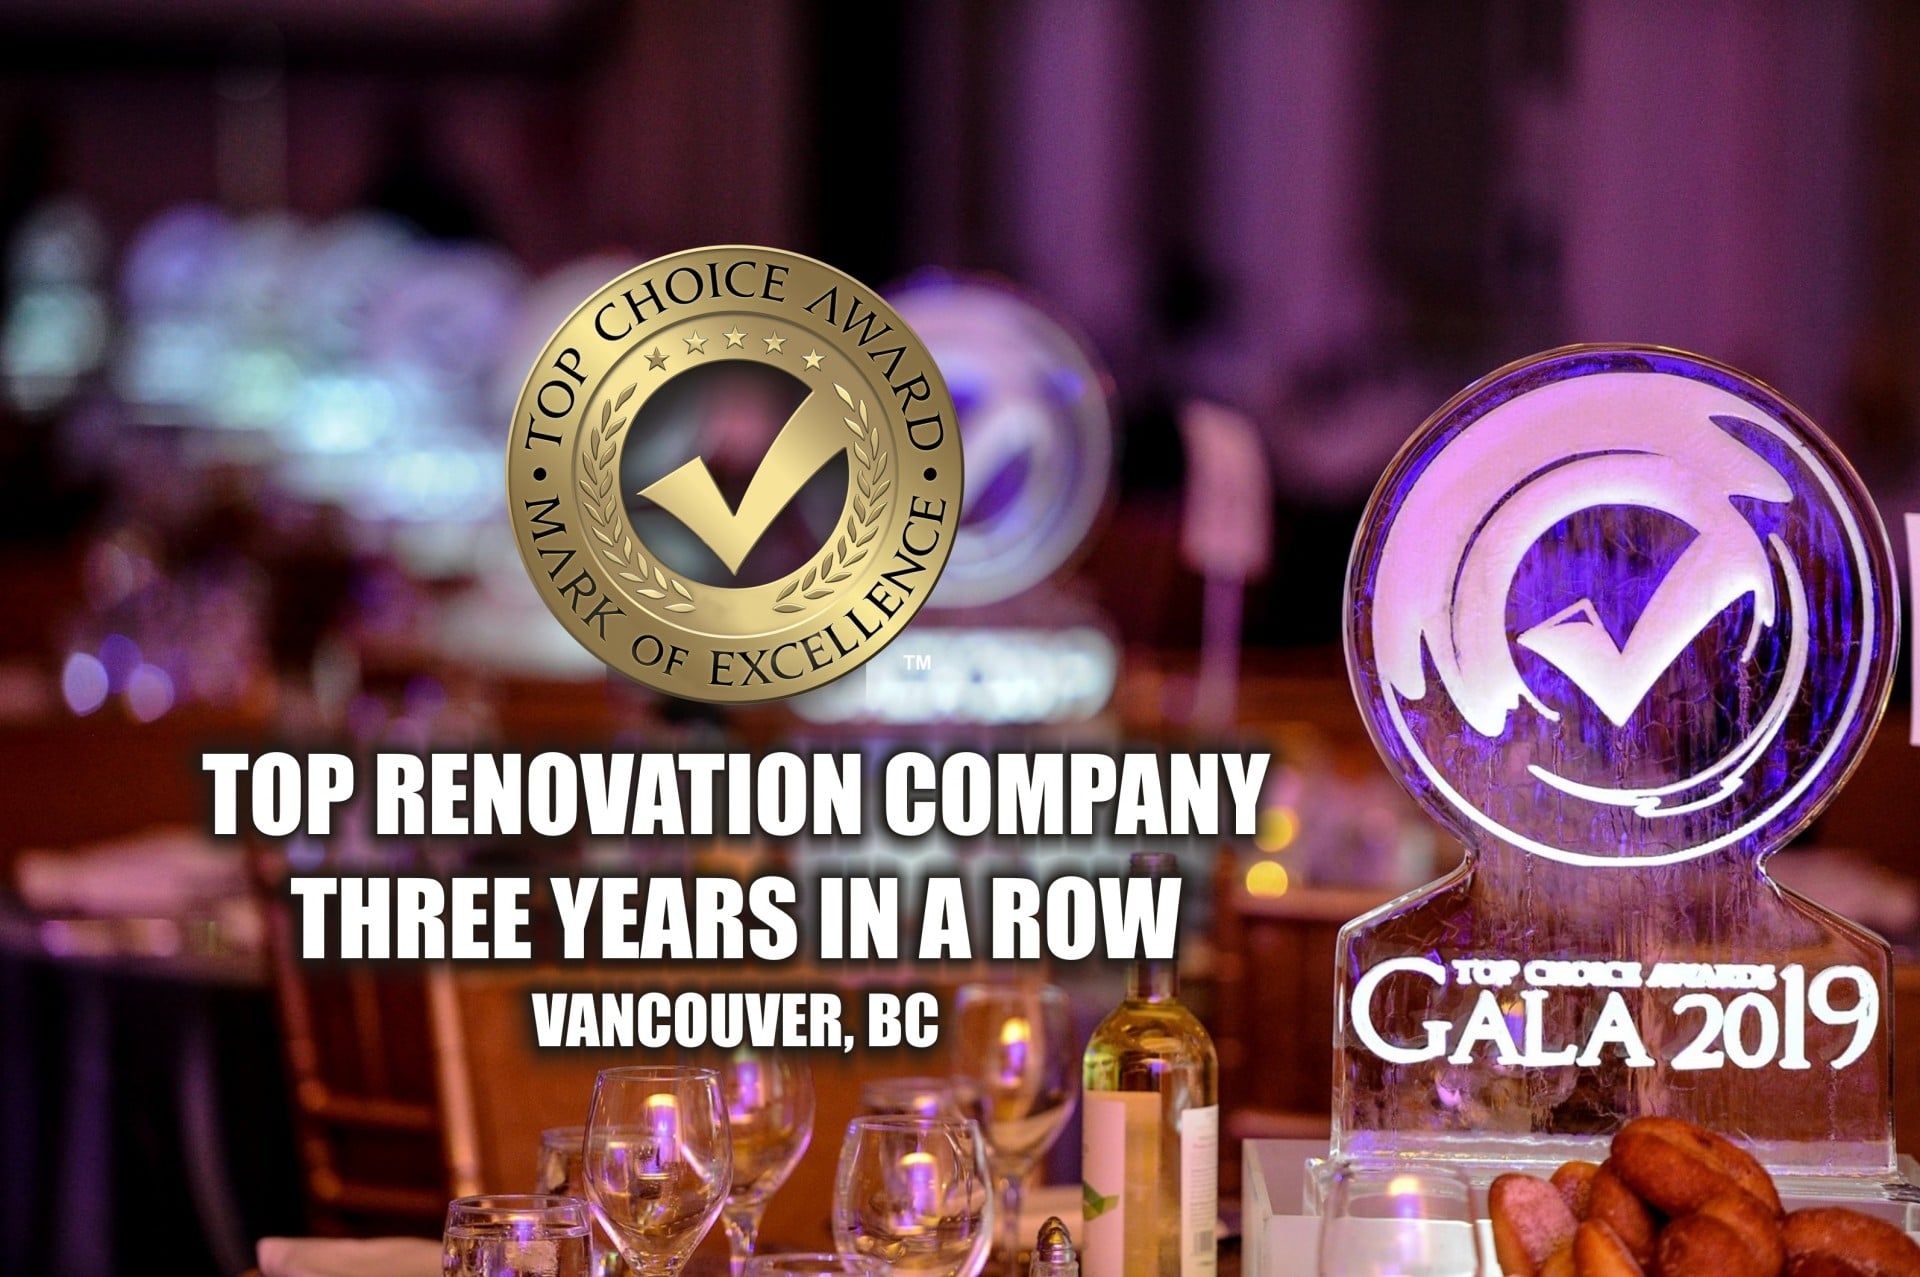 Top Renovation Company 3 years in a row